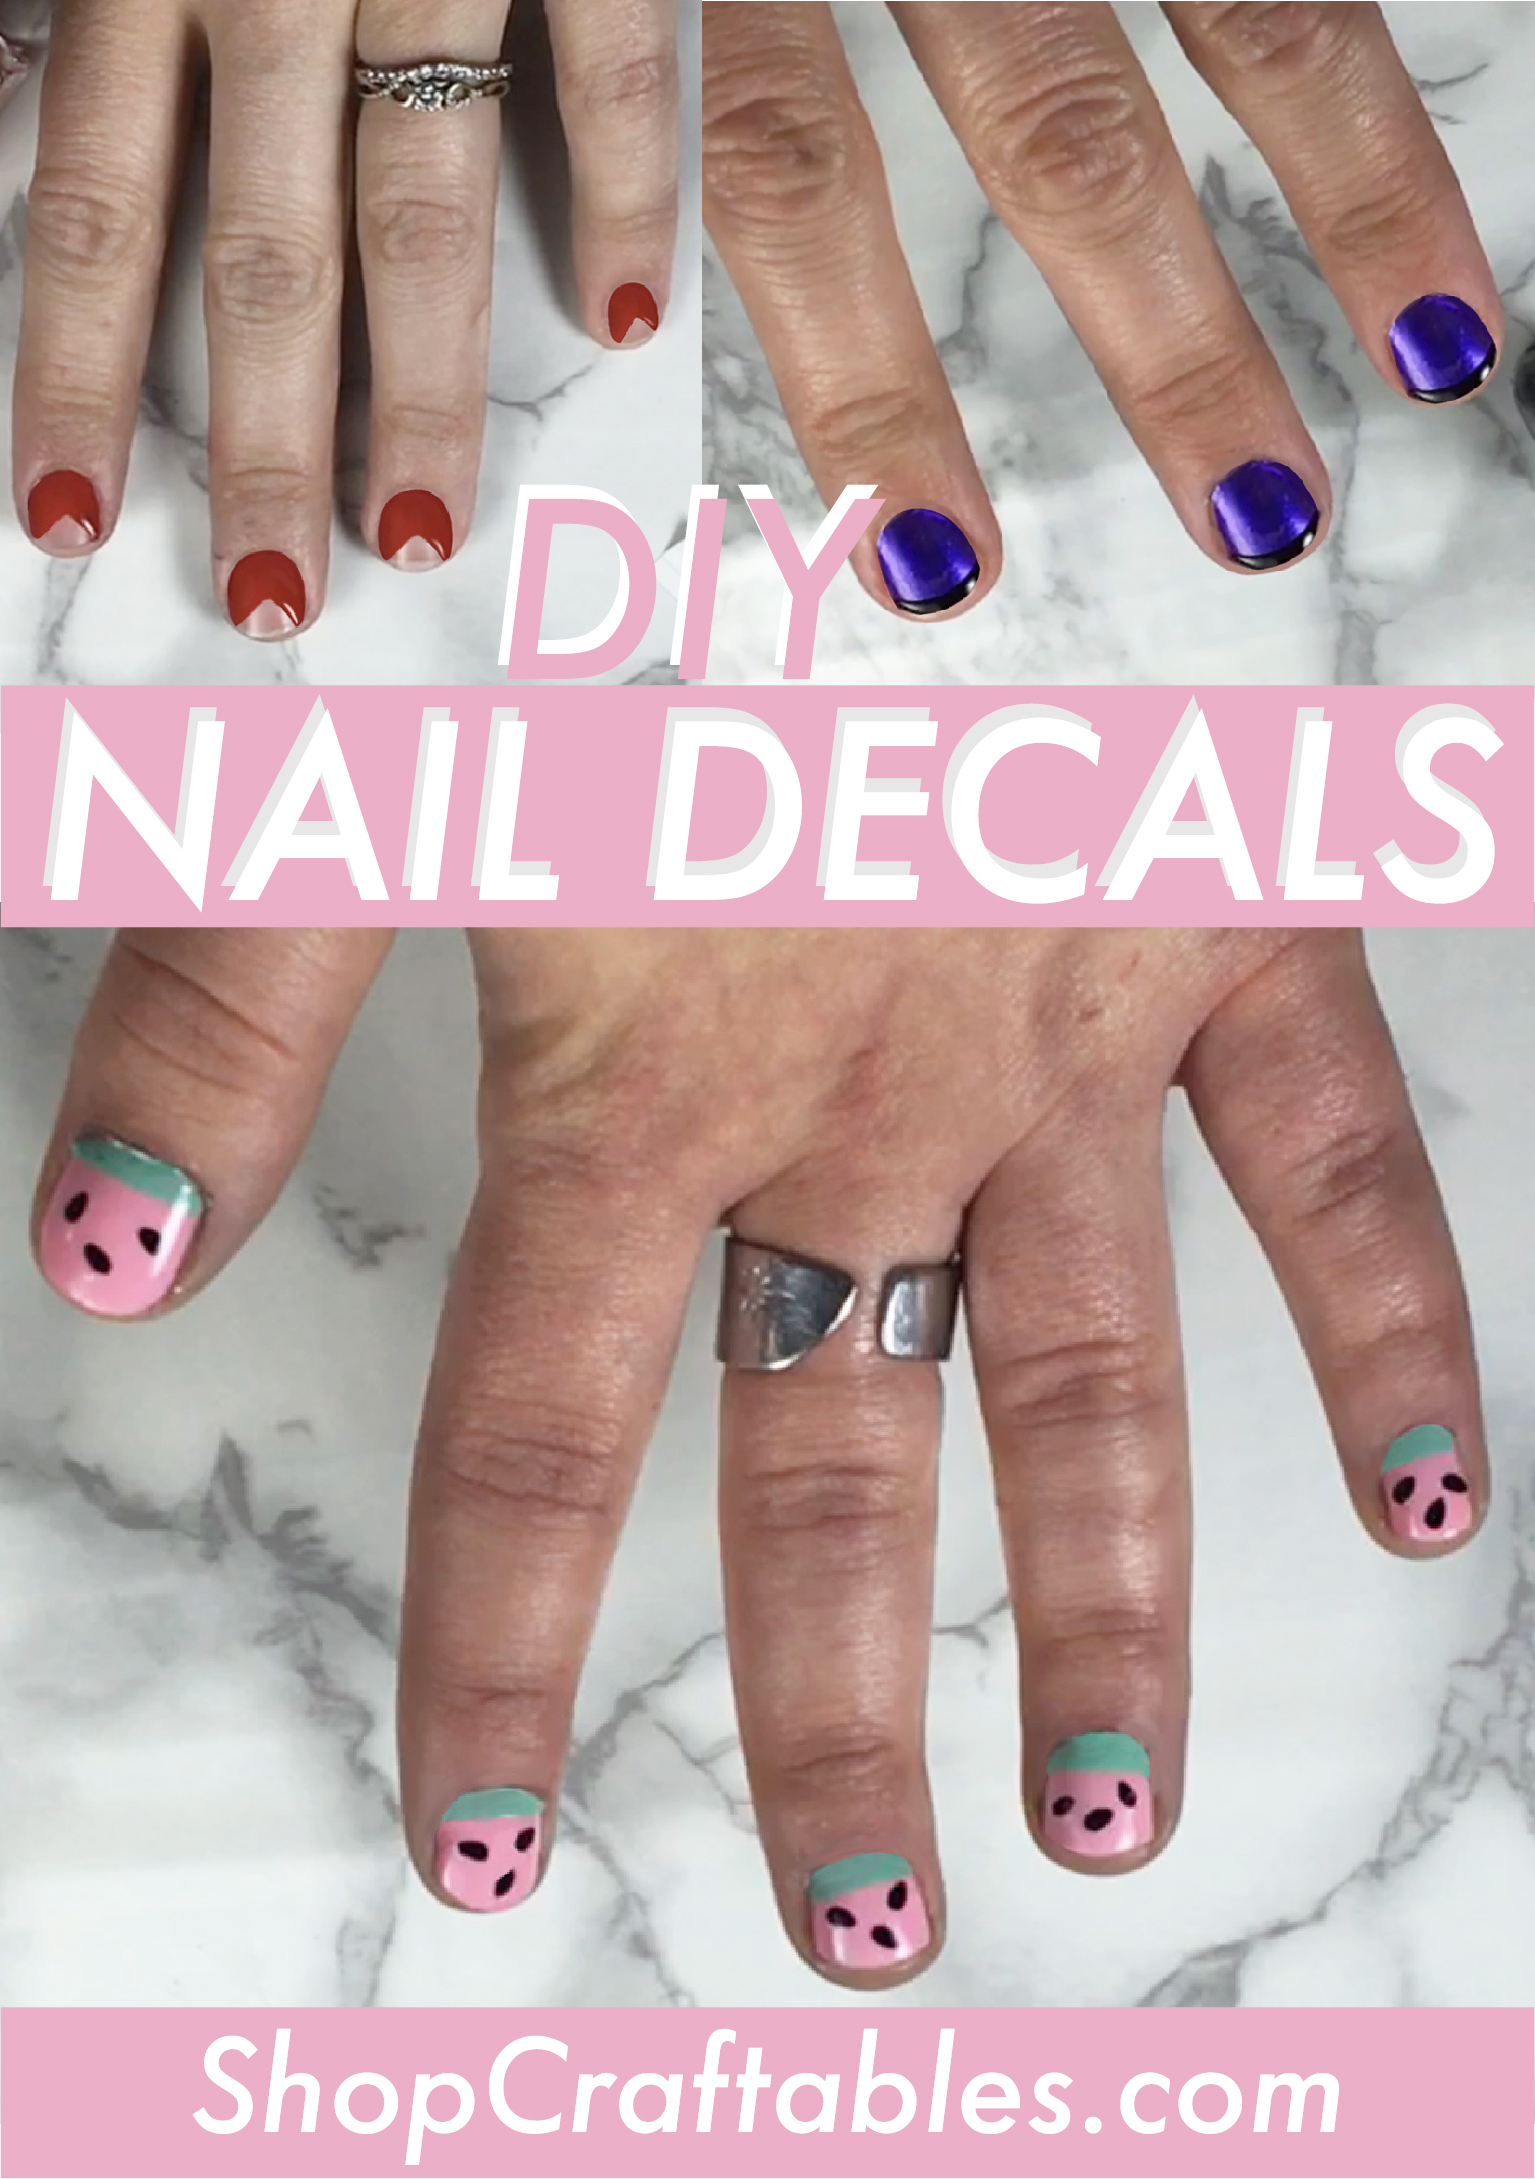 It's just a photo of Printable Nail Designs for paper